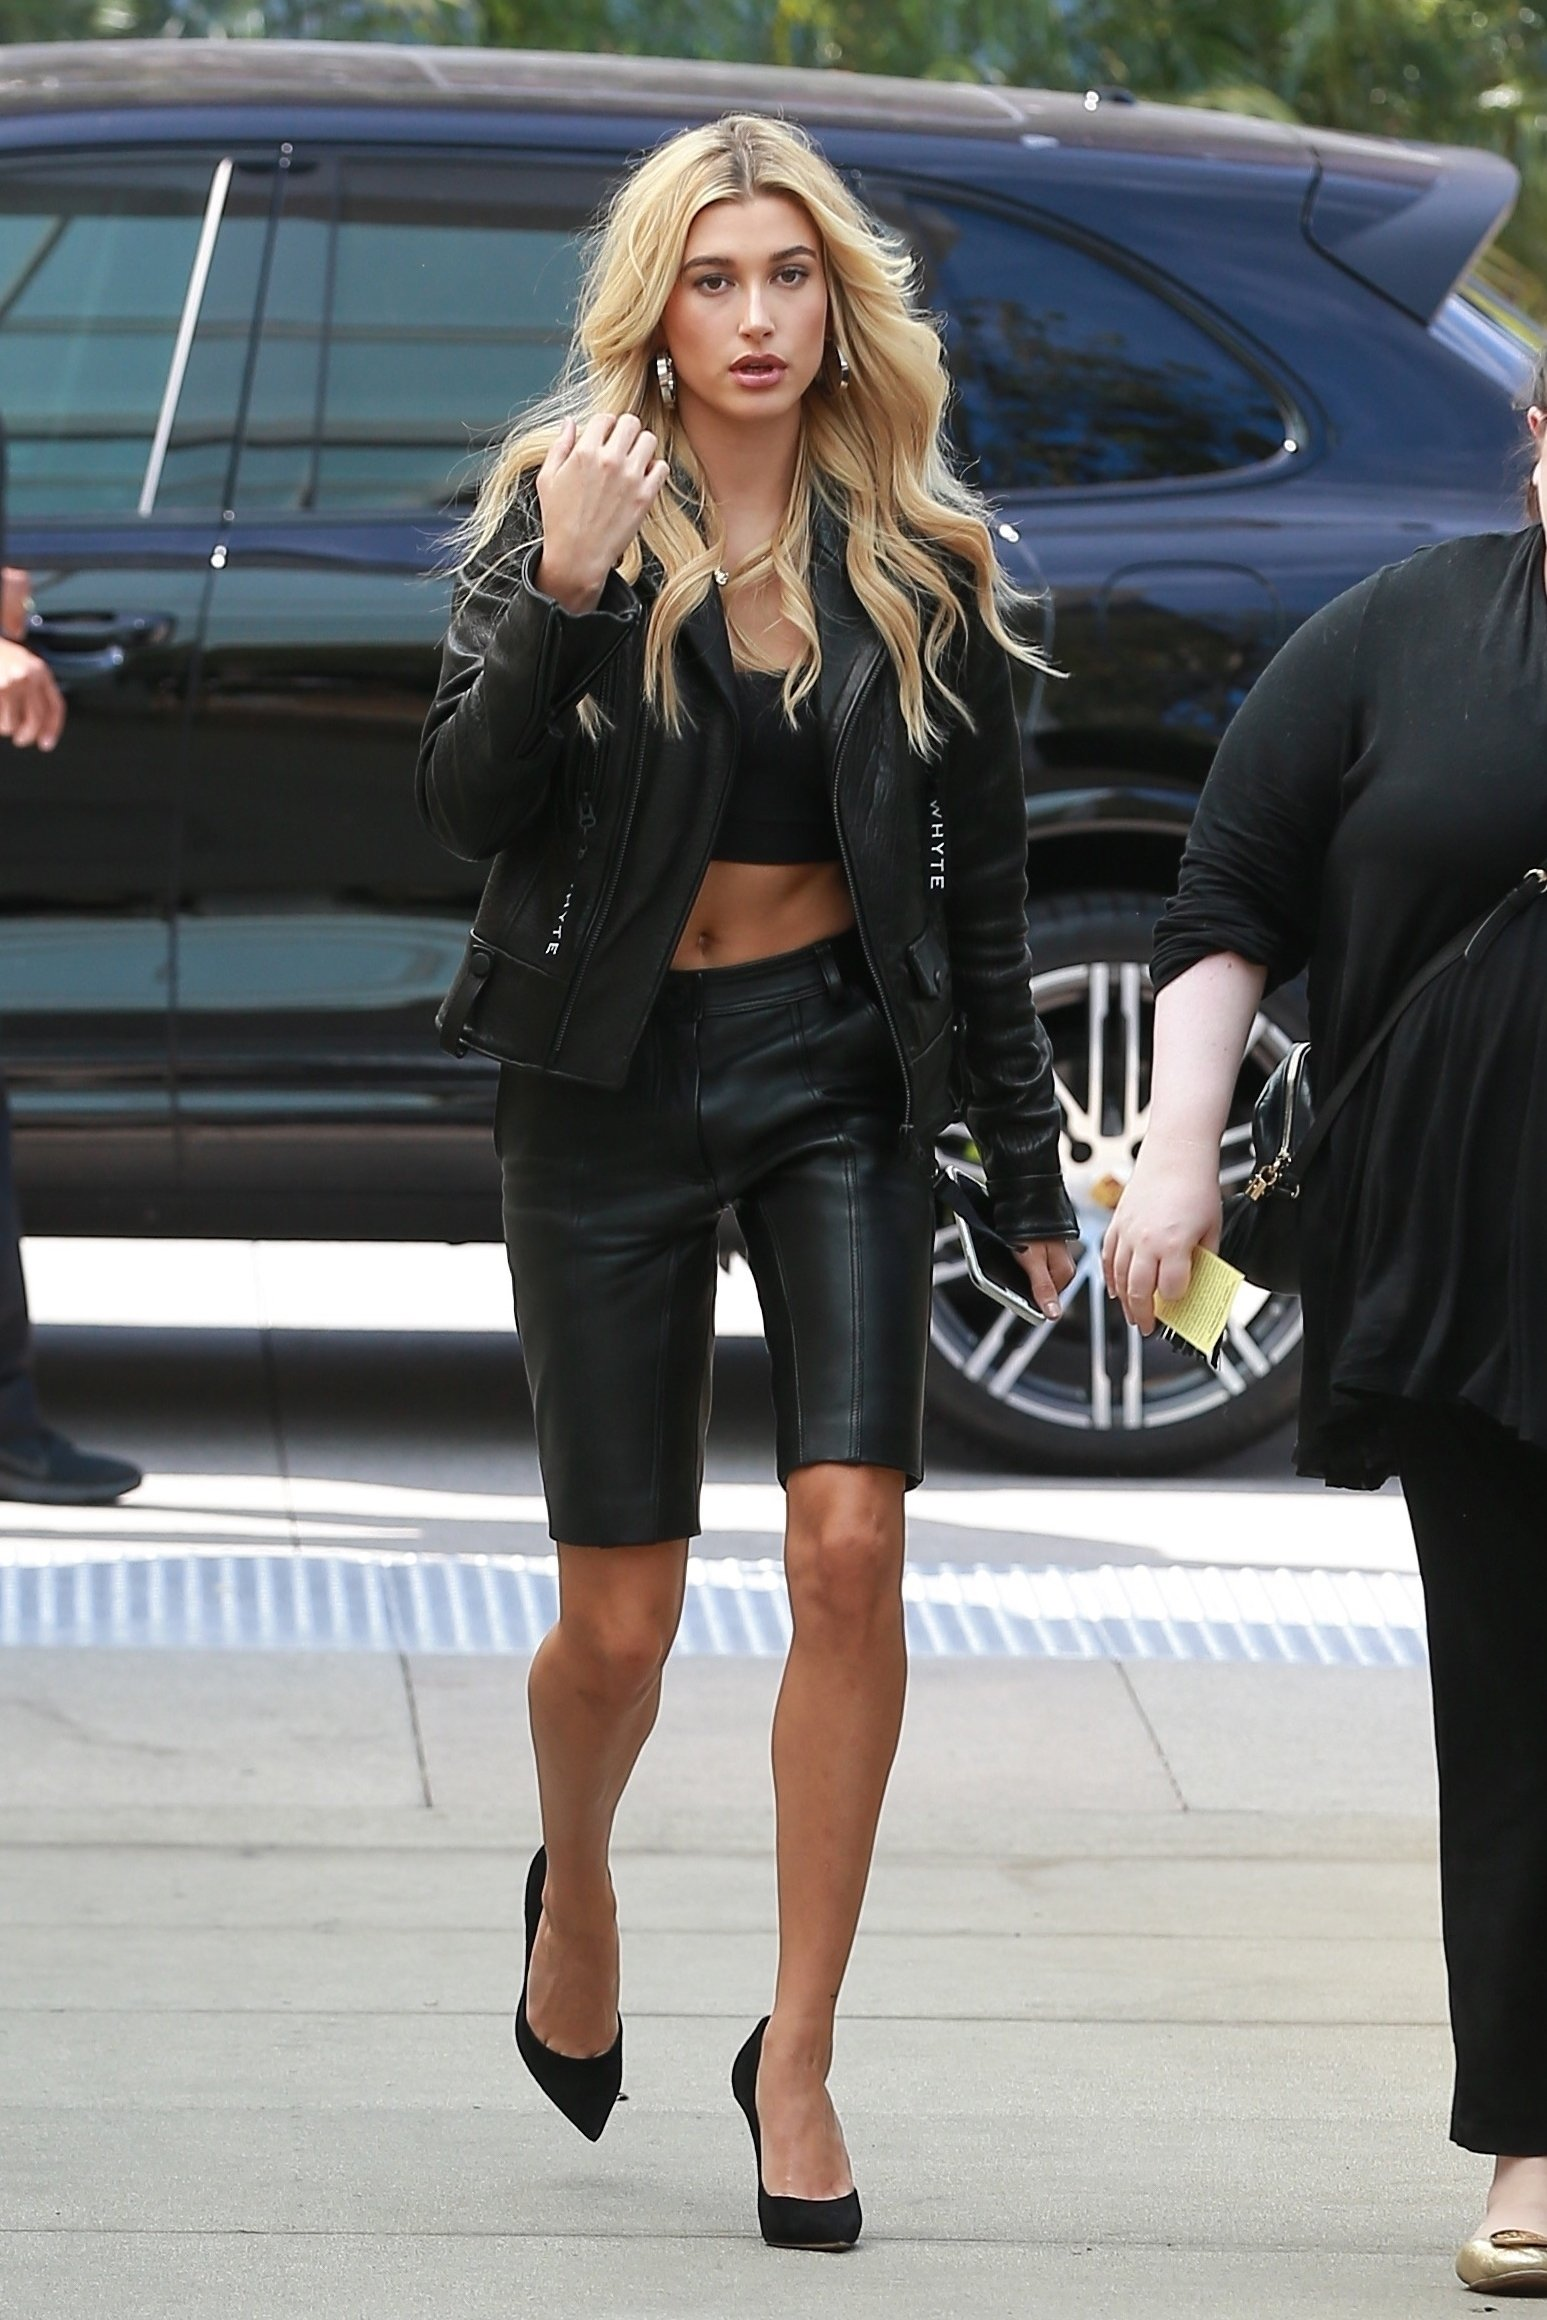 Hollywood, CA  - *EXCLUSIVE*  - Hailey Baldwin heads to a meeting in Hollywood. The blonde model is wearing leather bermuda shorts and a crop top paired with a leather moto jacket and heels. As temperatures reach the upper 80s today in Los Angeles, Hailey still manages to show some skin in her leather outfit.  Pictured: Hailey Baldwin  BACKGRID USA 17 OCTOBER 2017, Image: 353272902, License: Rights-managed, Restrictions: , Model Release: no, Credit line: Profimedia, AKM-GSI